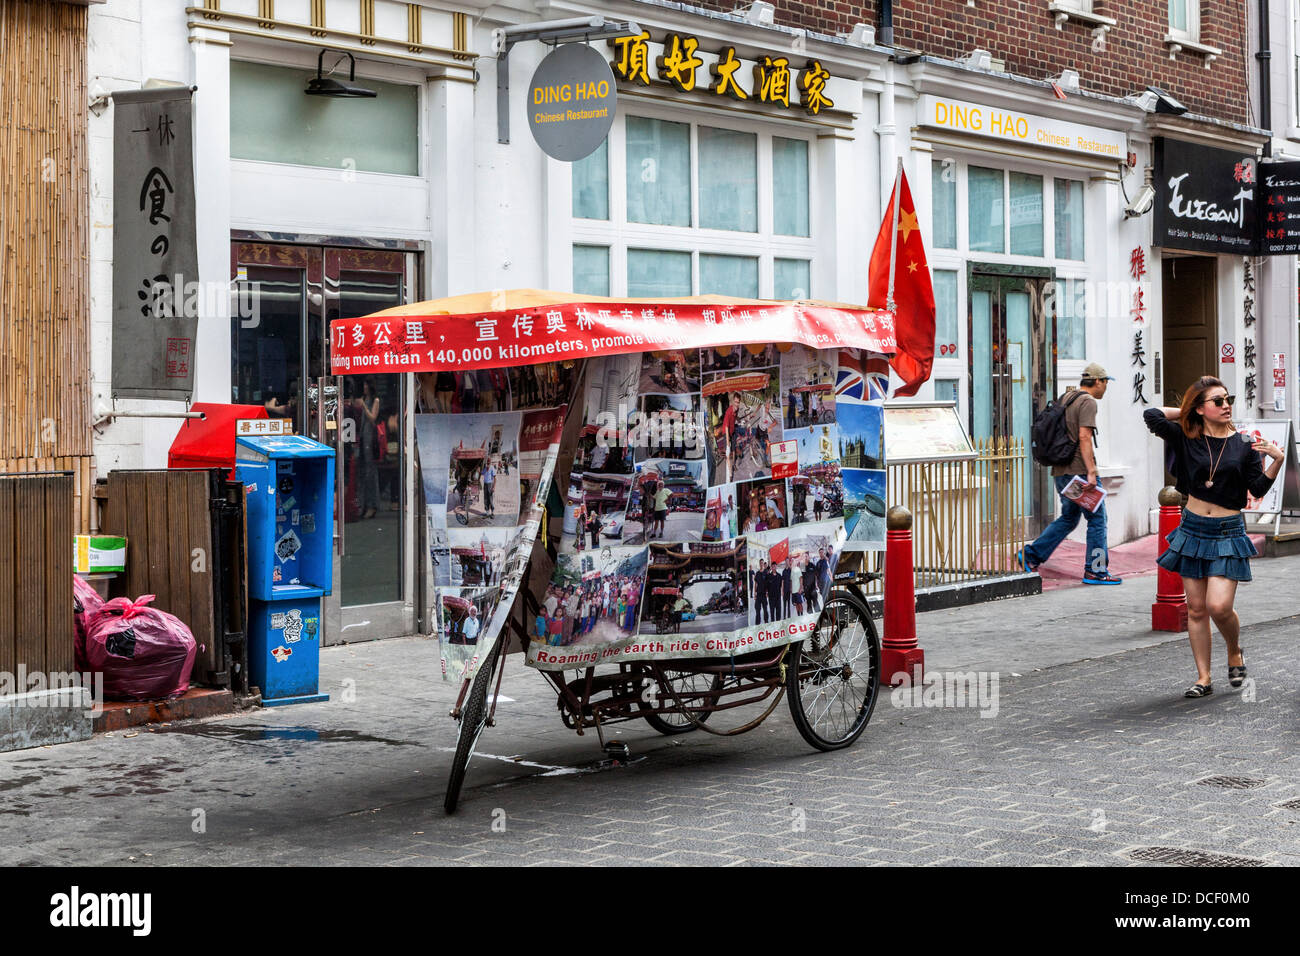 Tricycle of cycling Chinese traveller parked in Gerrard Street ChinaTown, London W1 - Stock Image